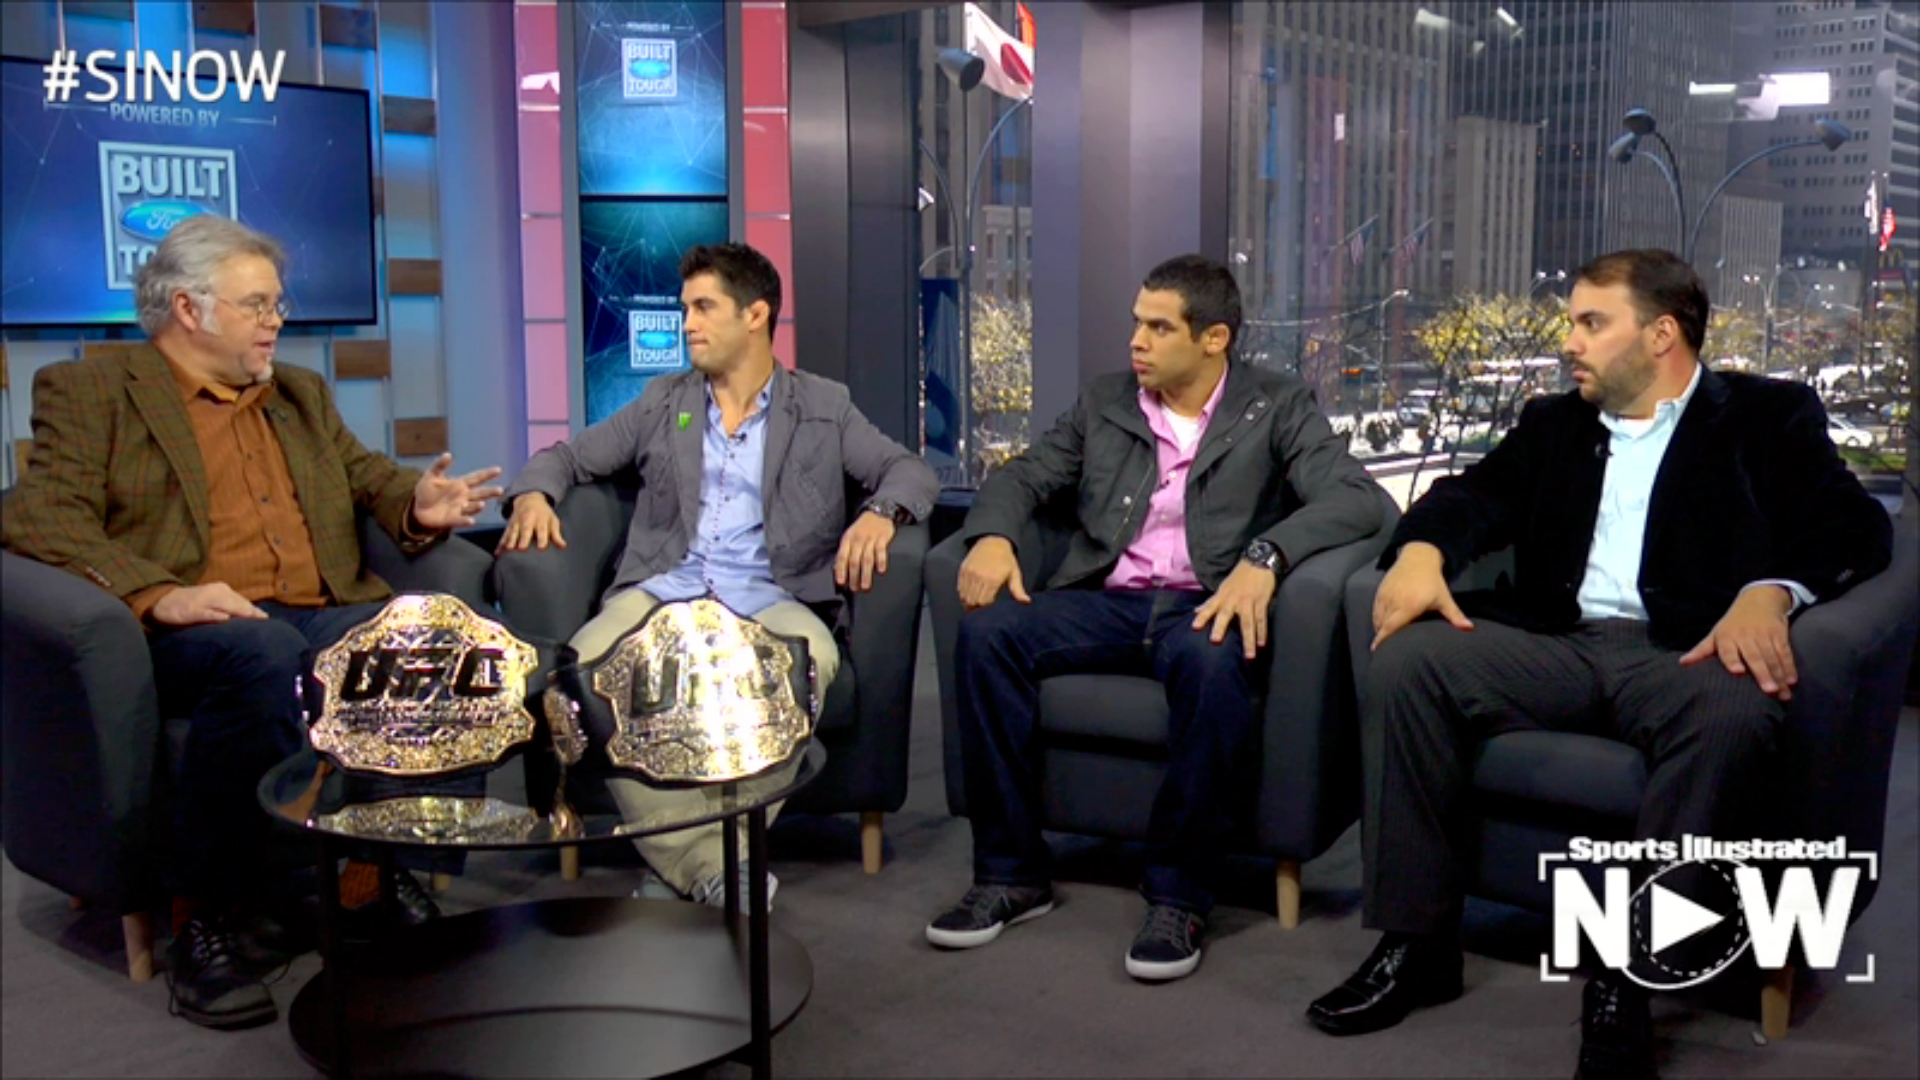 Live TV Interview with UFC World Champions - Portuguese Interpreter